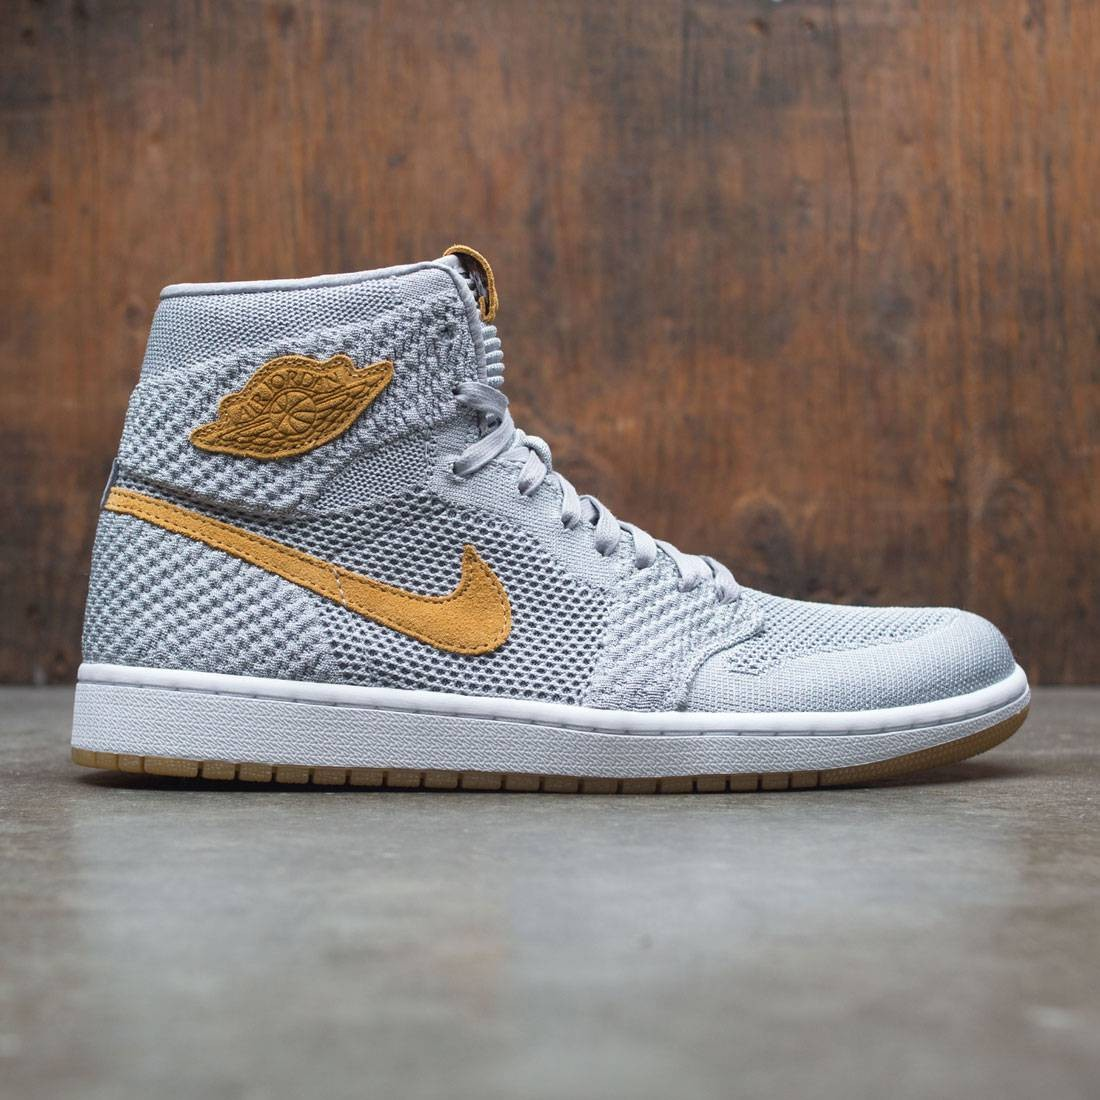 0af5d1eae7cd1 jordan men air jordan 1 retro high flyknit grey wolf grey golden harvest  gum yellow